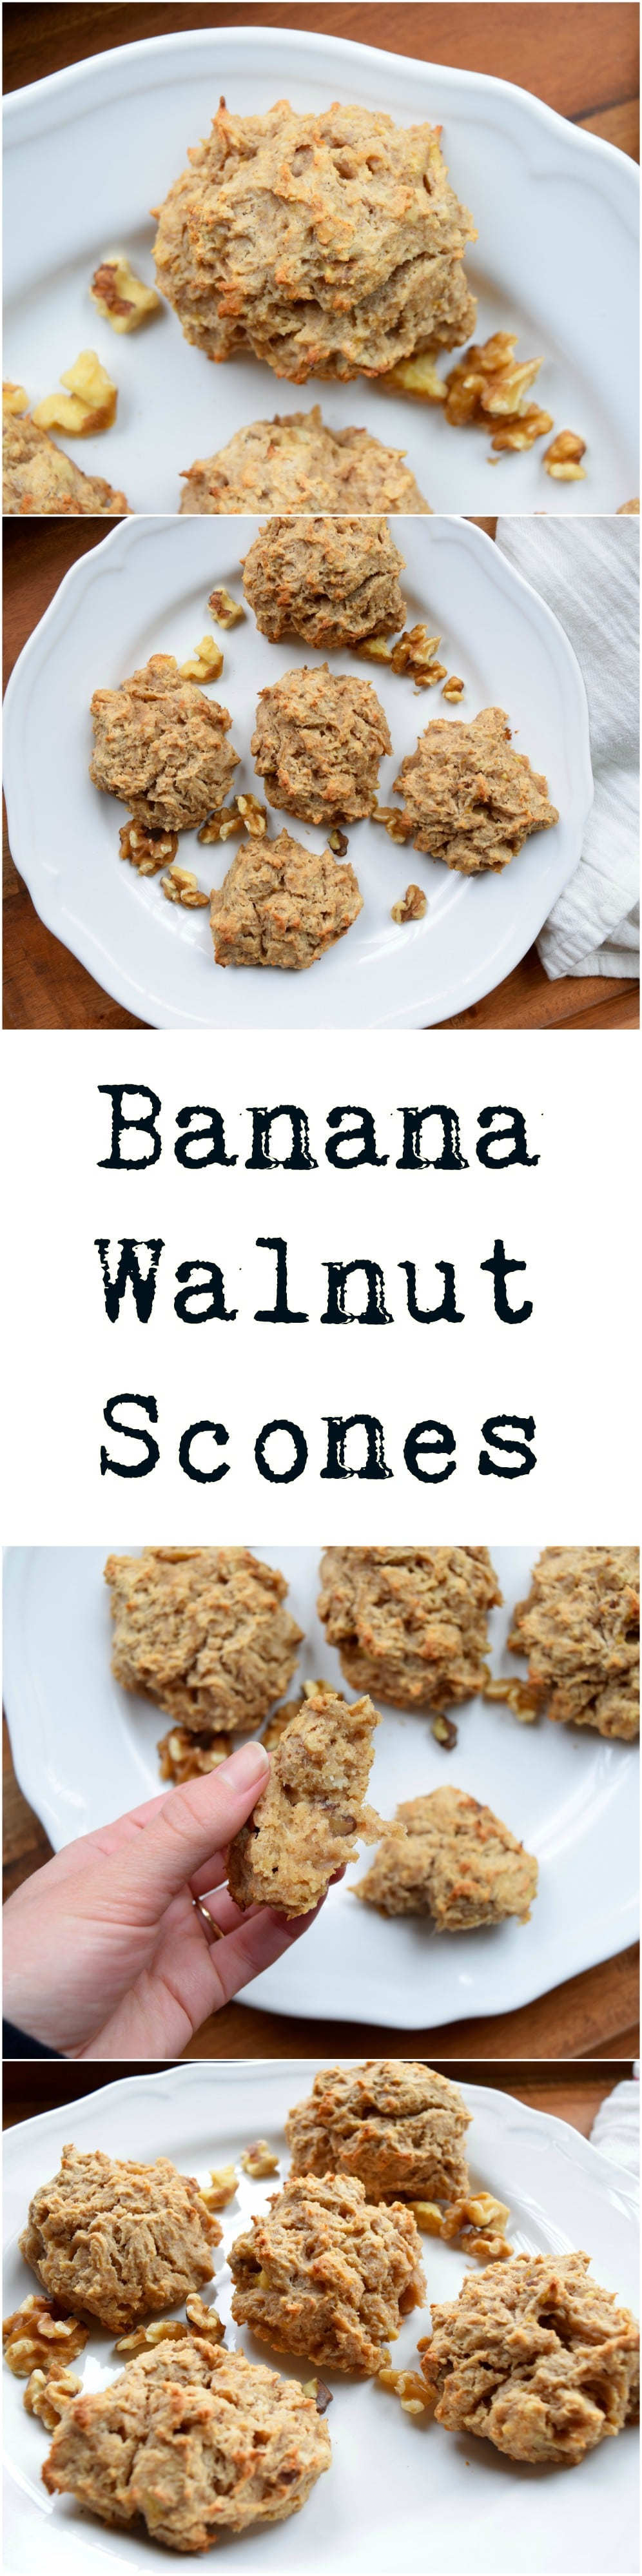 Banana Walnut Scones | Earth Powered Family